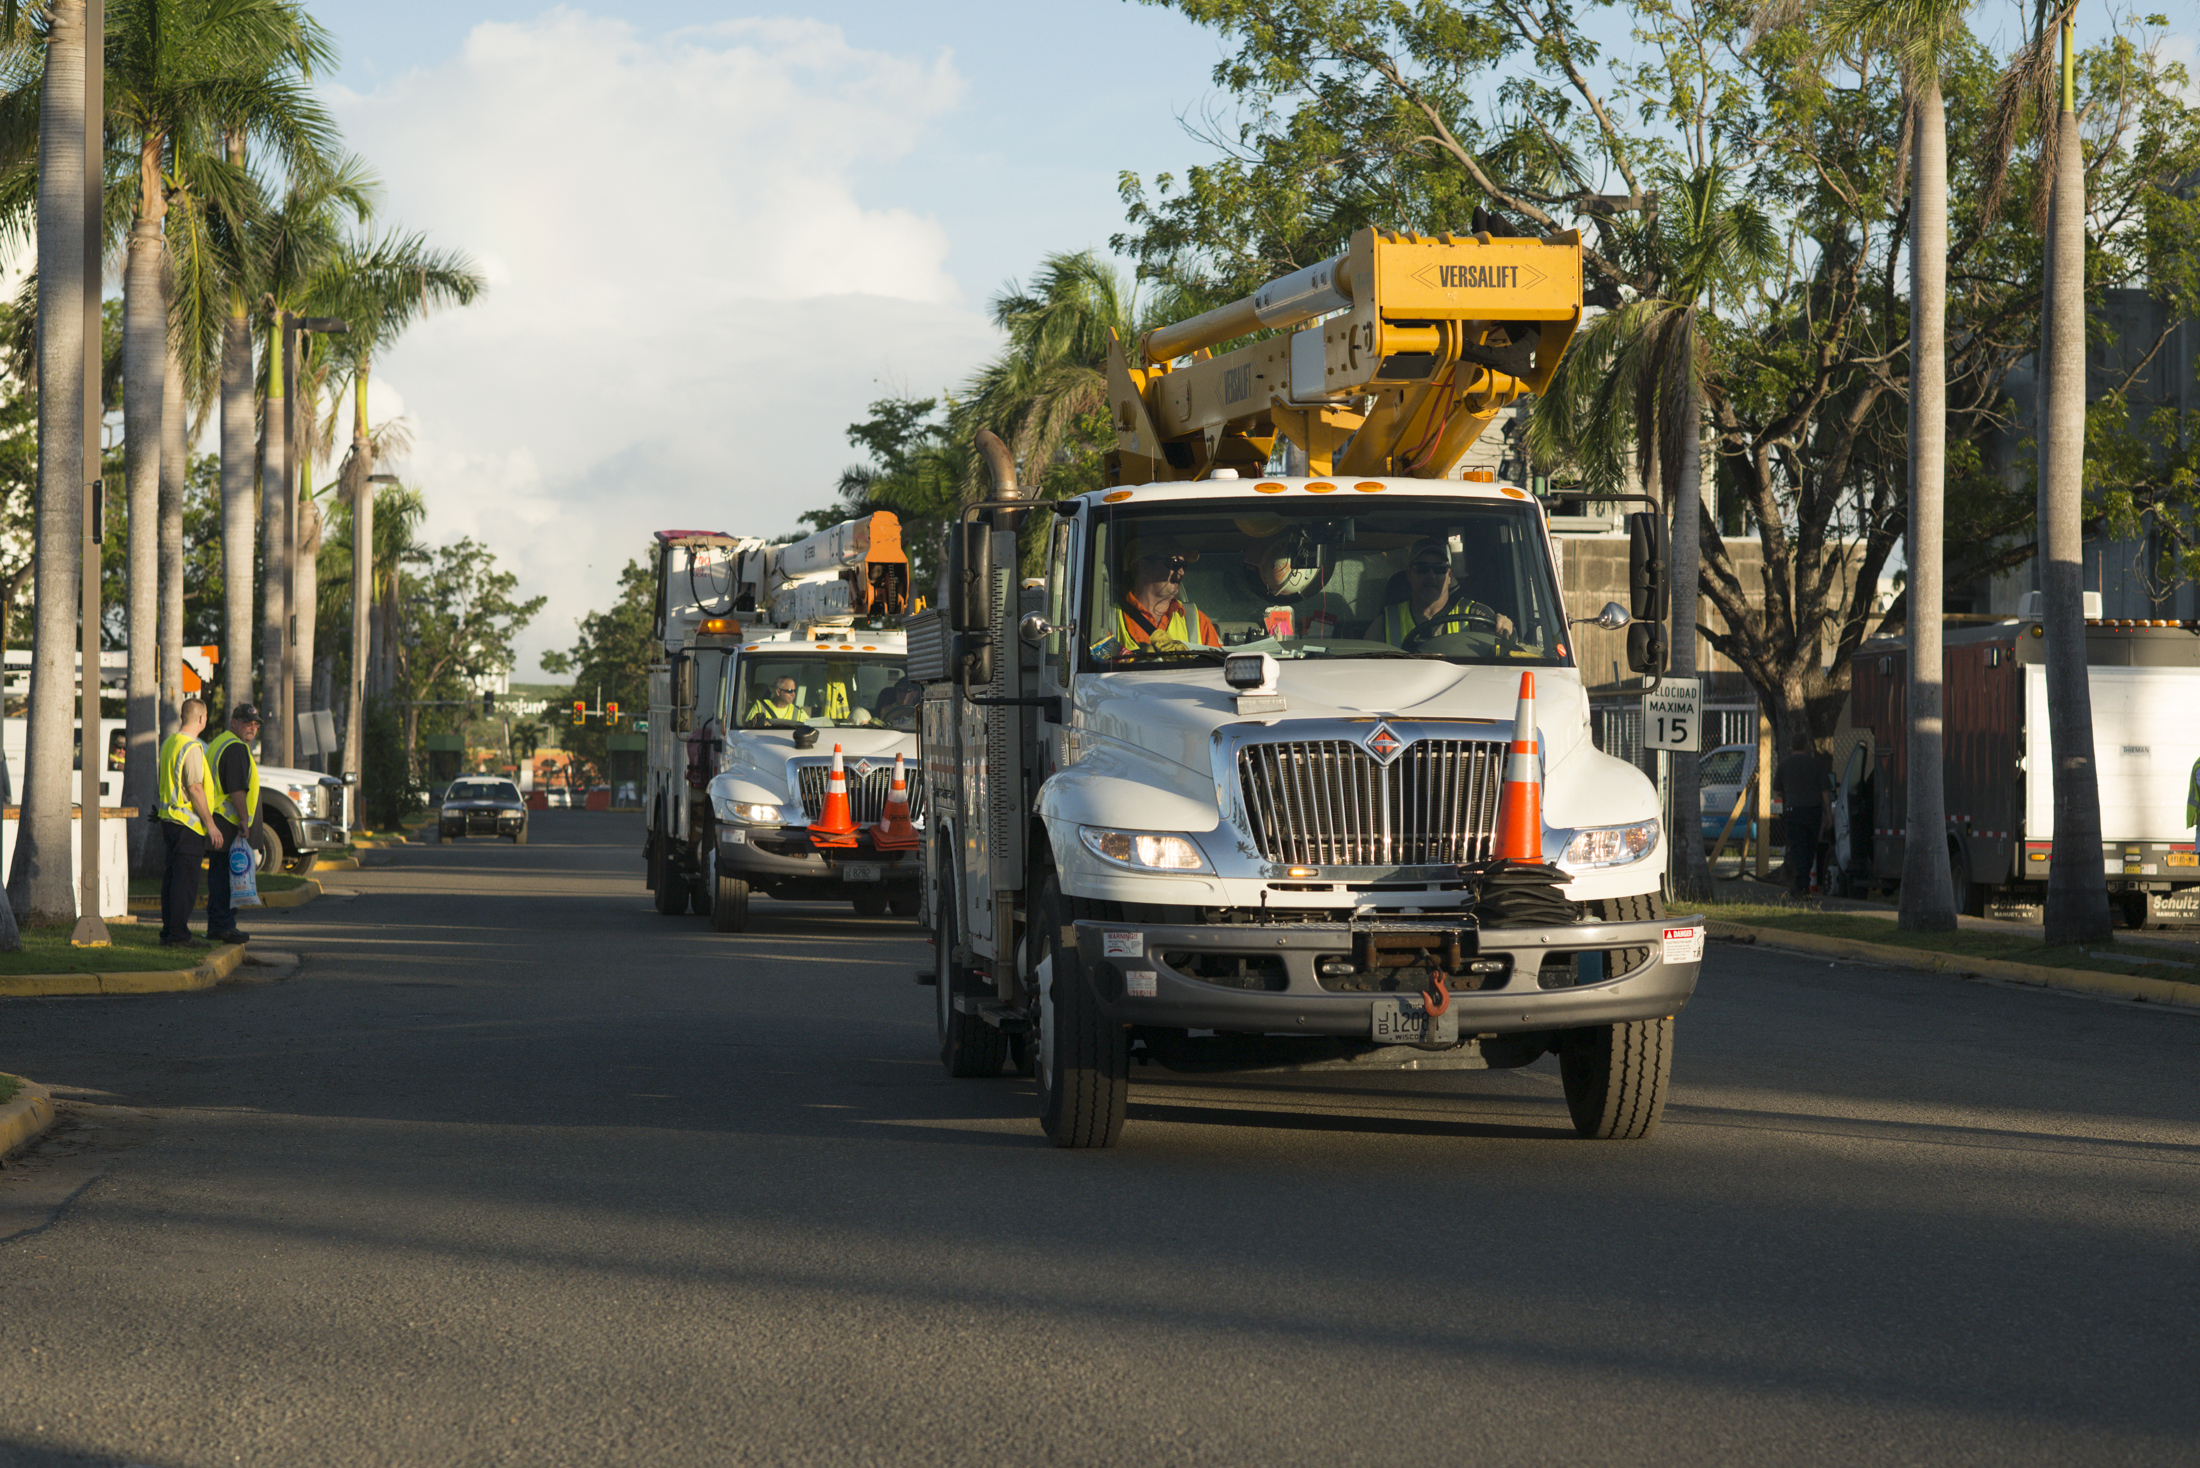 WPS and We Energies crews heading to work site in San Juan, Puerto Rico. (Photo courtesy of Wisconsin Public Service)